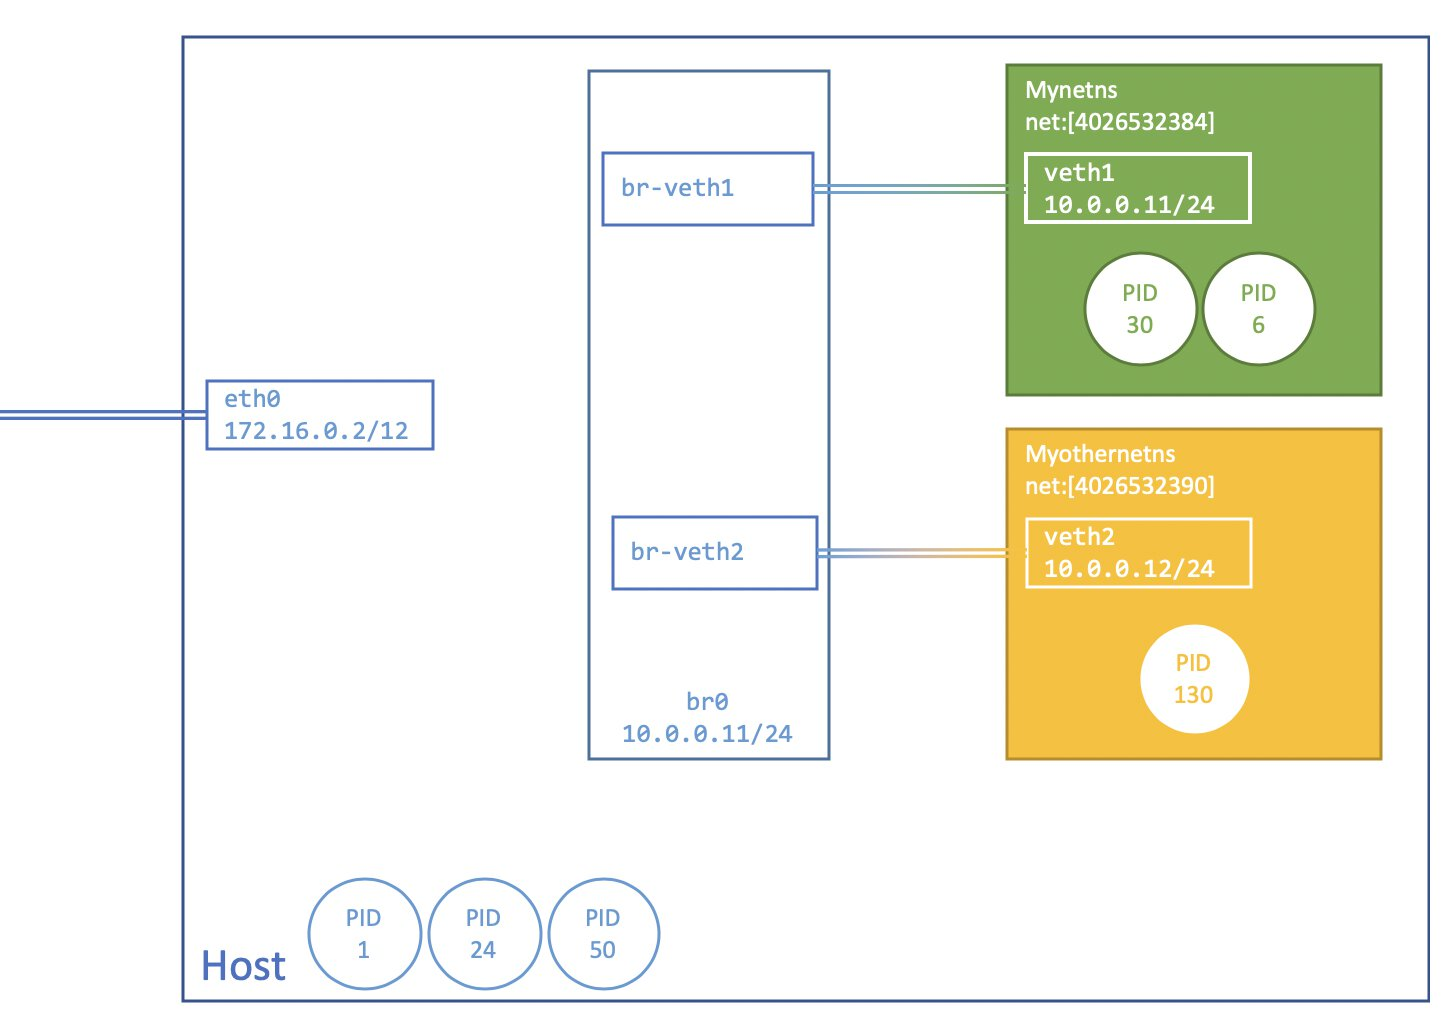 Image showing an overview of what was created. eth0, br-veth1, br-veth2 are part of the initial namespace, while veth1 and veth2 are part of separate network namespaces. br-veth1 and br-veth2 are connected to the bridge, br0.